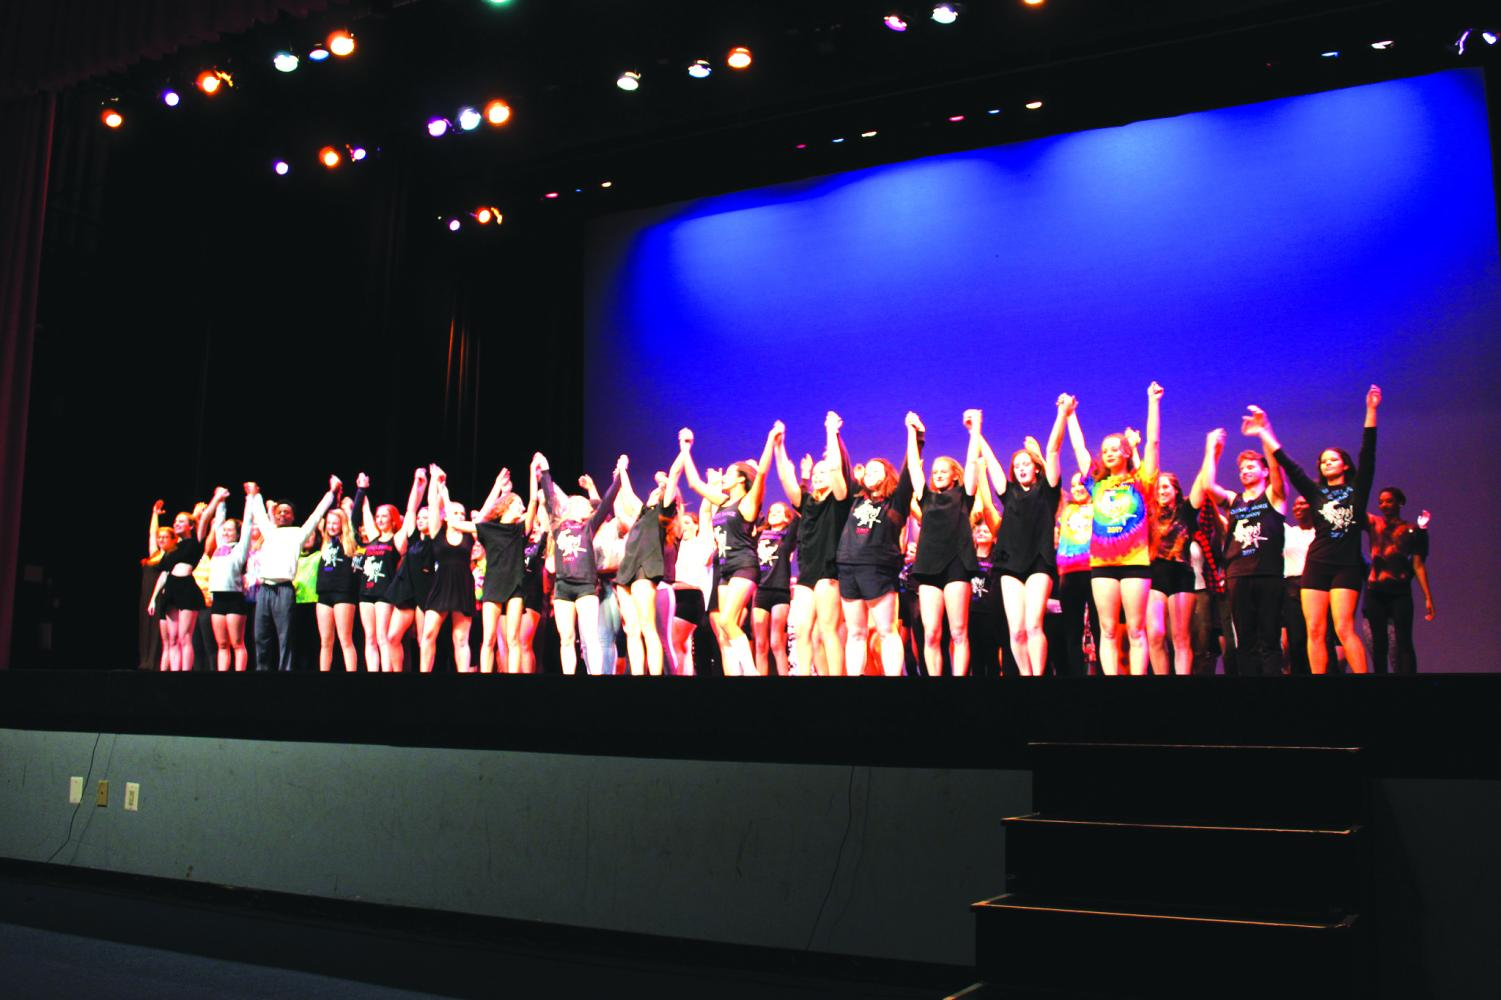 The+Orchesis+choreographers+take+their+final+bow+in+Shafer+Auditorium+at+the+conclusion+of+the+show.